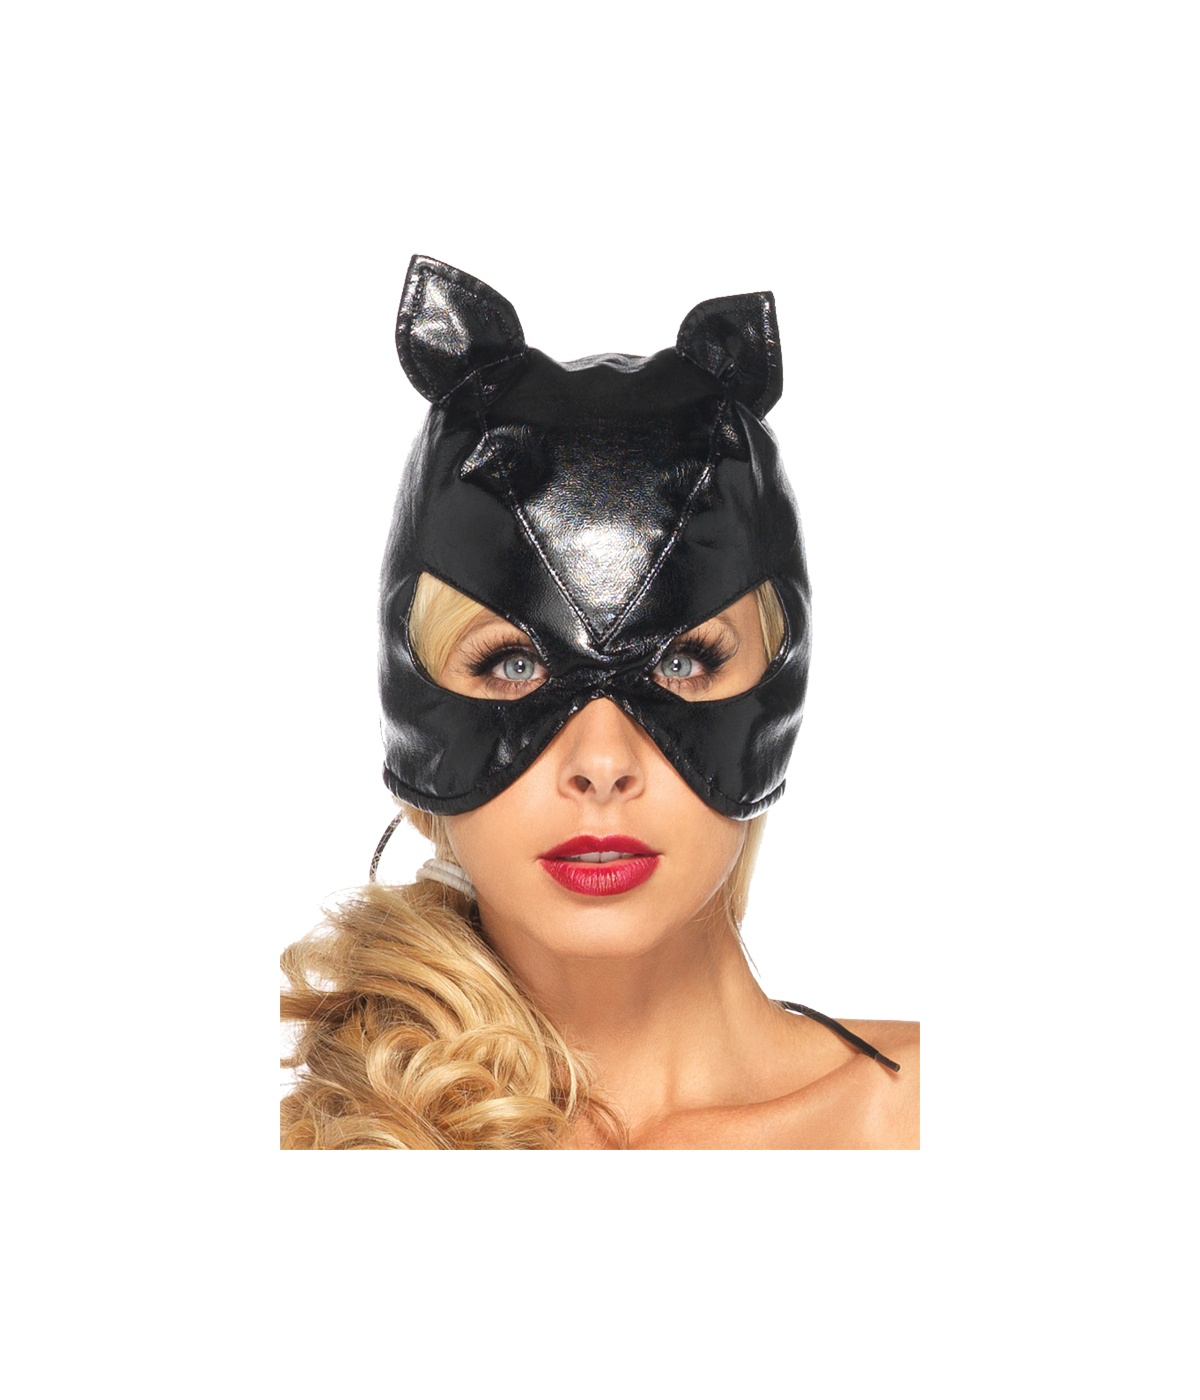 ... -> Superhero Costumes -> Catwoman Costumes -> Black Leather Cat ...